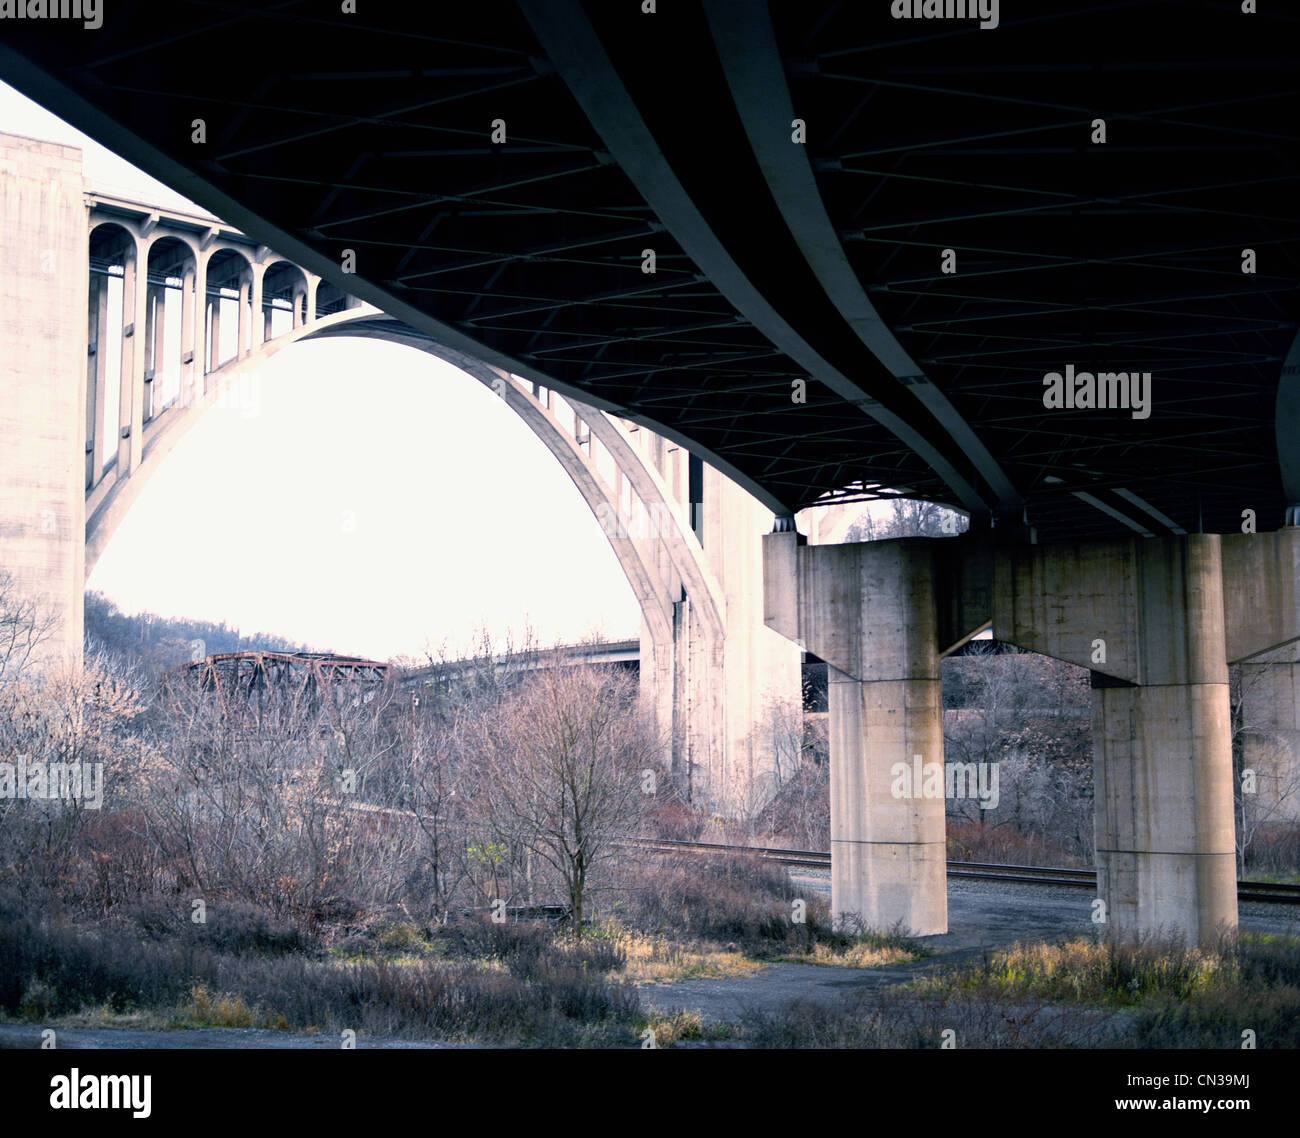 View from an underpass, Pennsylvania - Stock Image